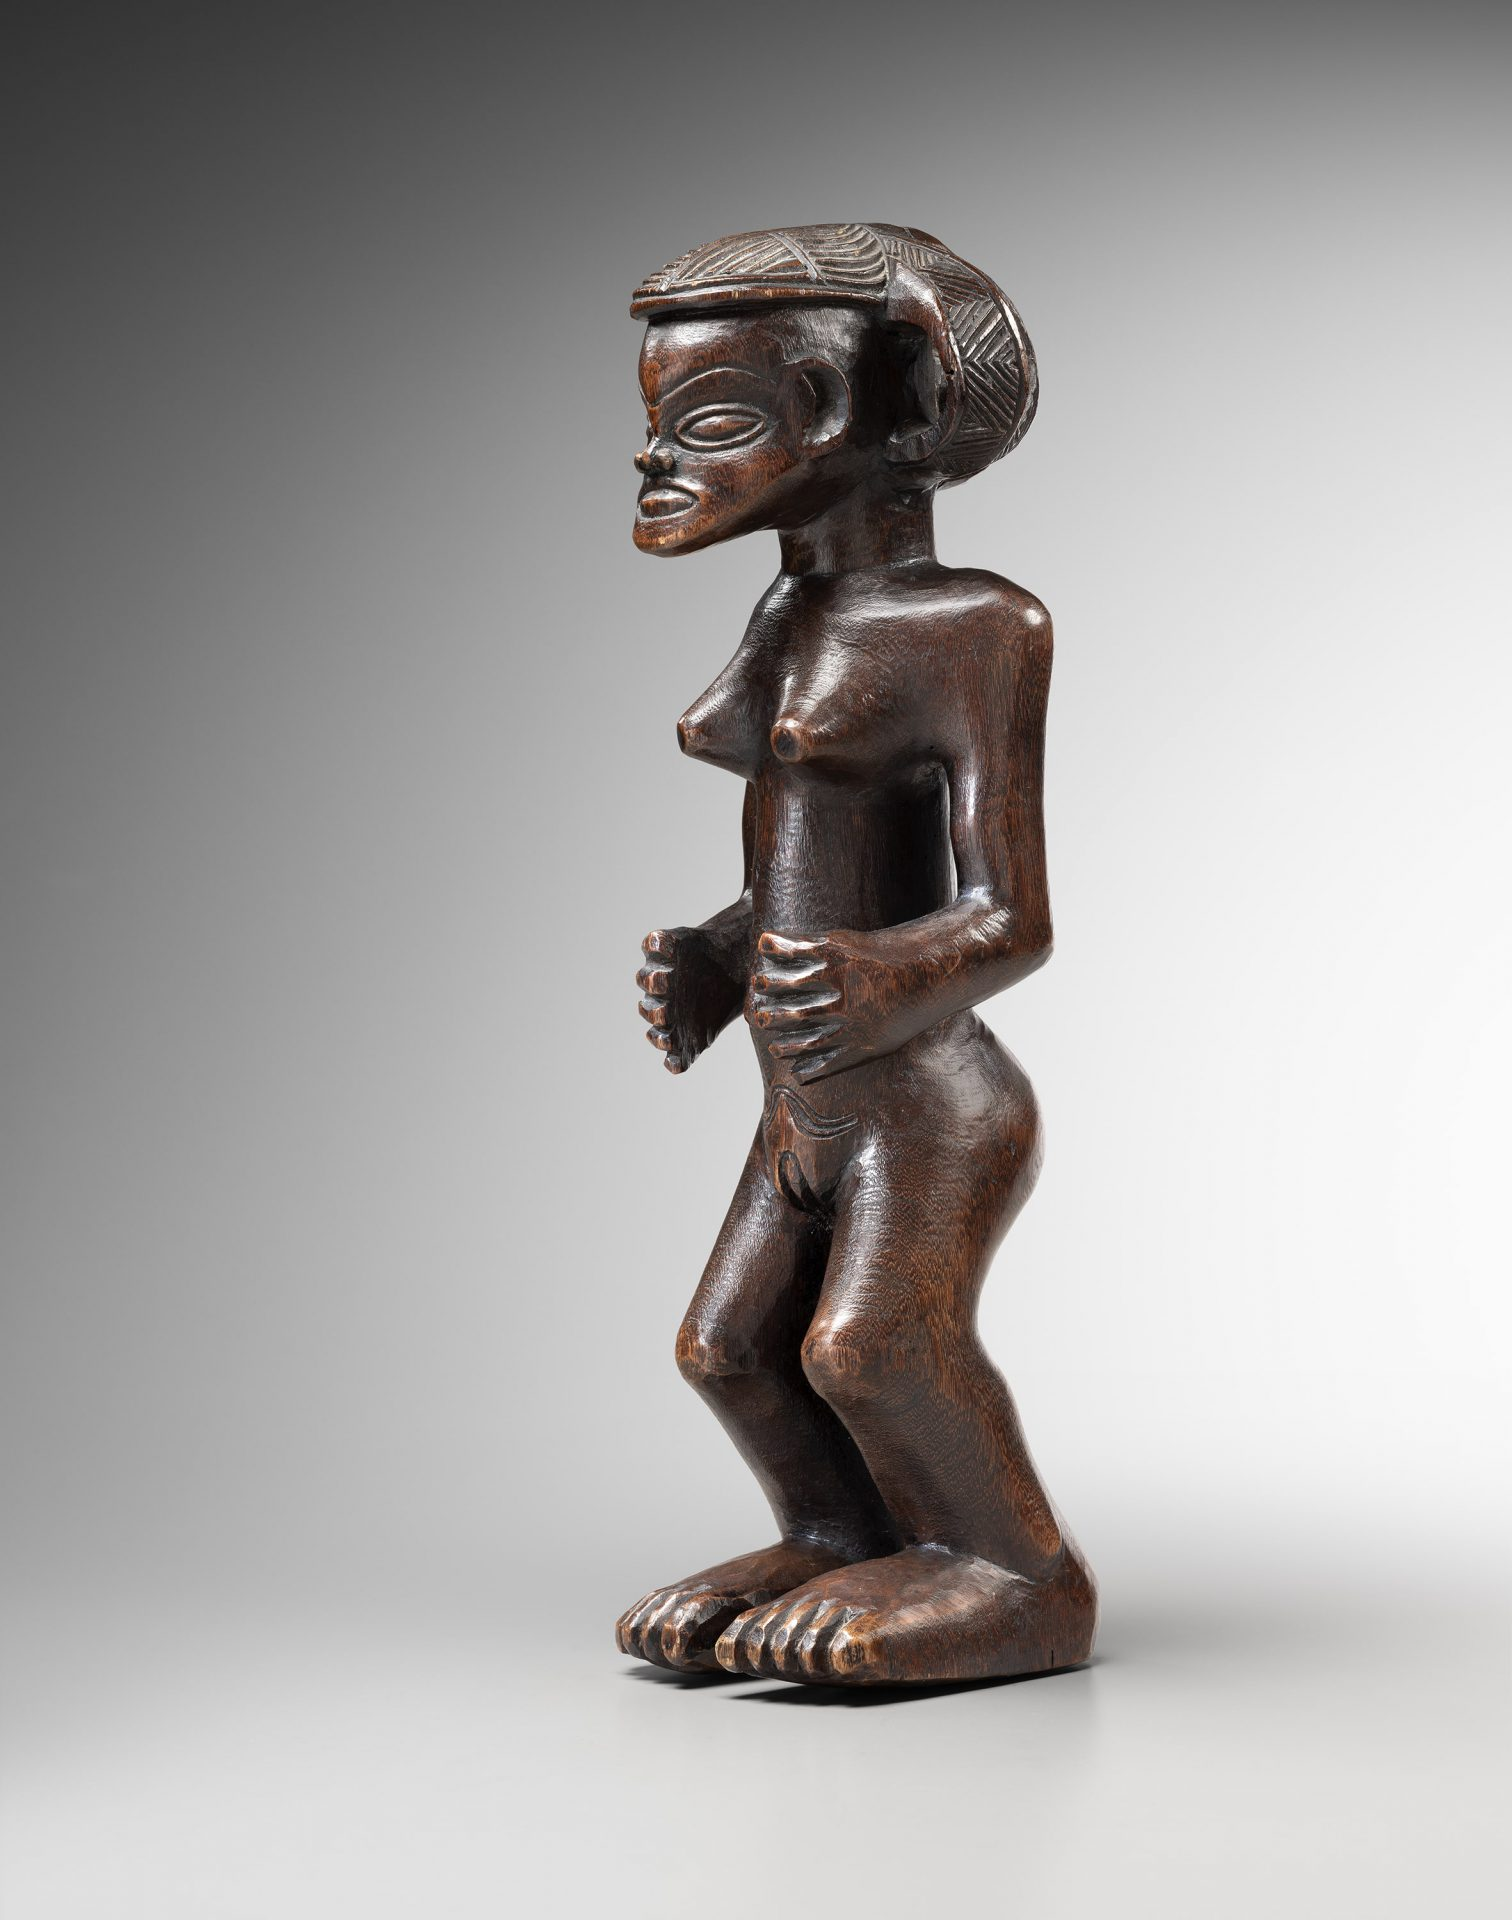 chokwe_female_figure